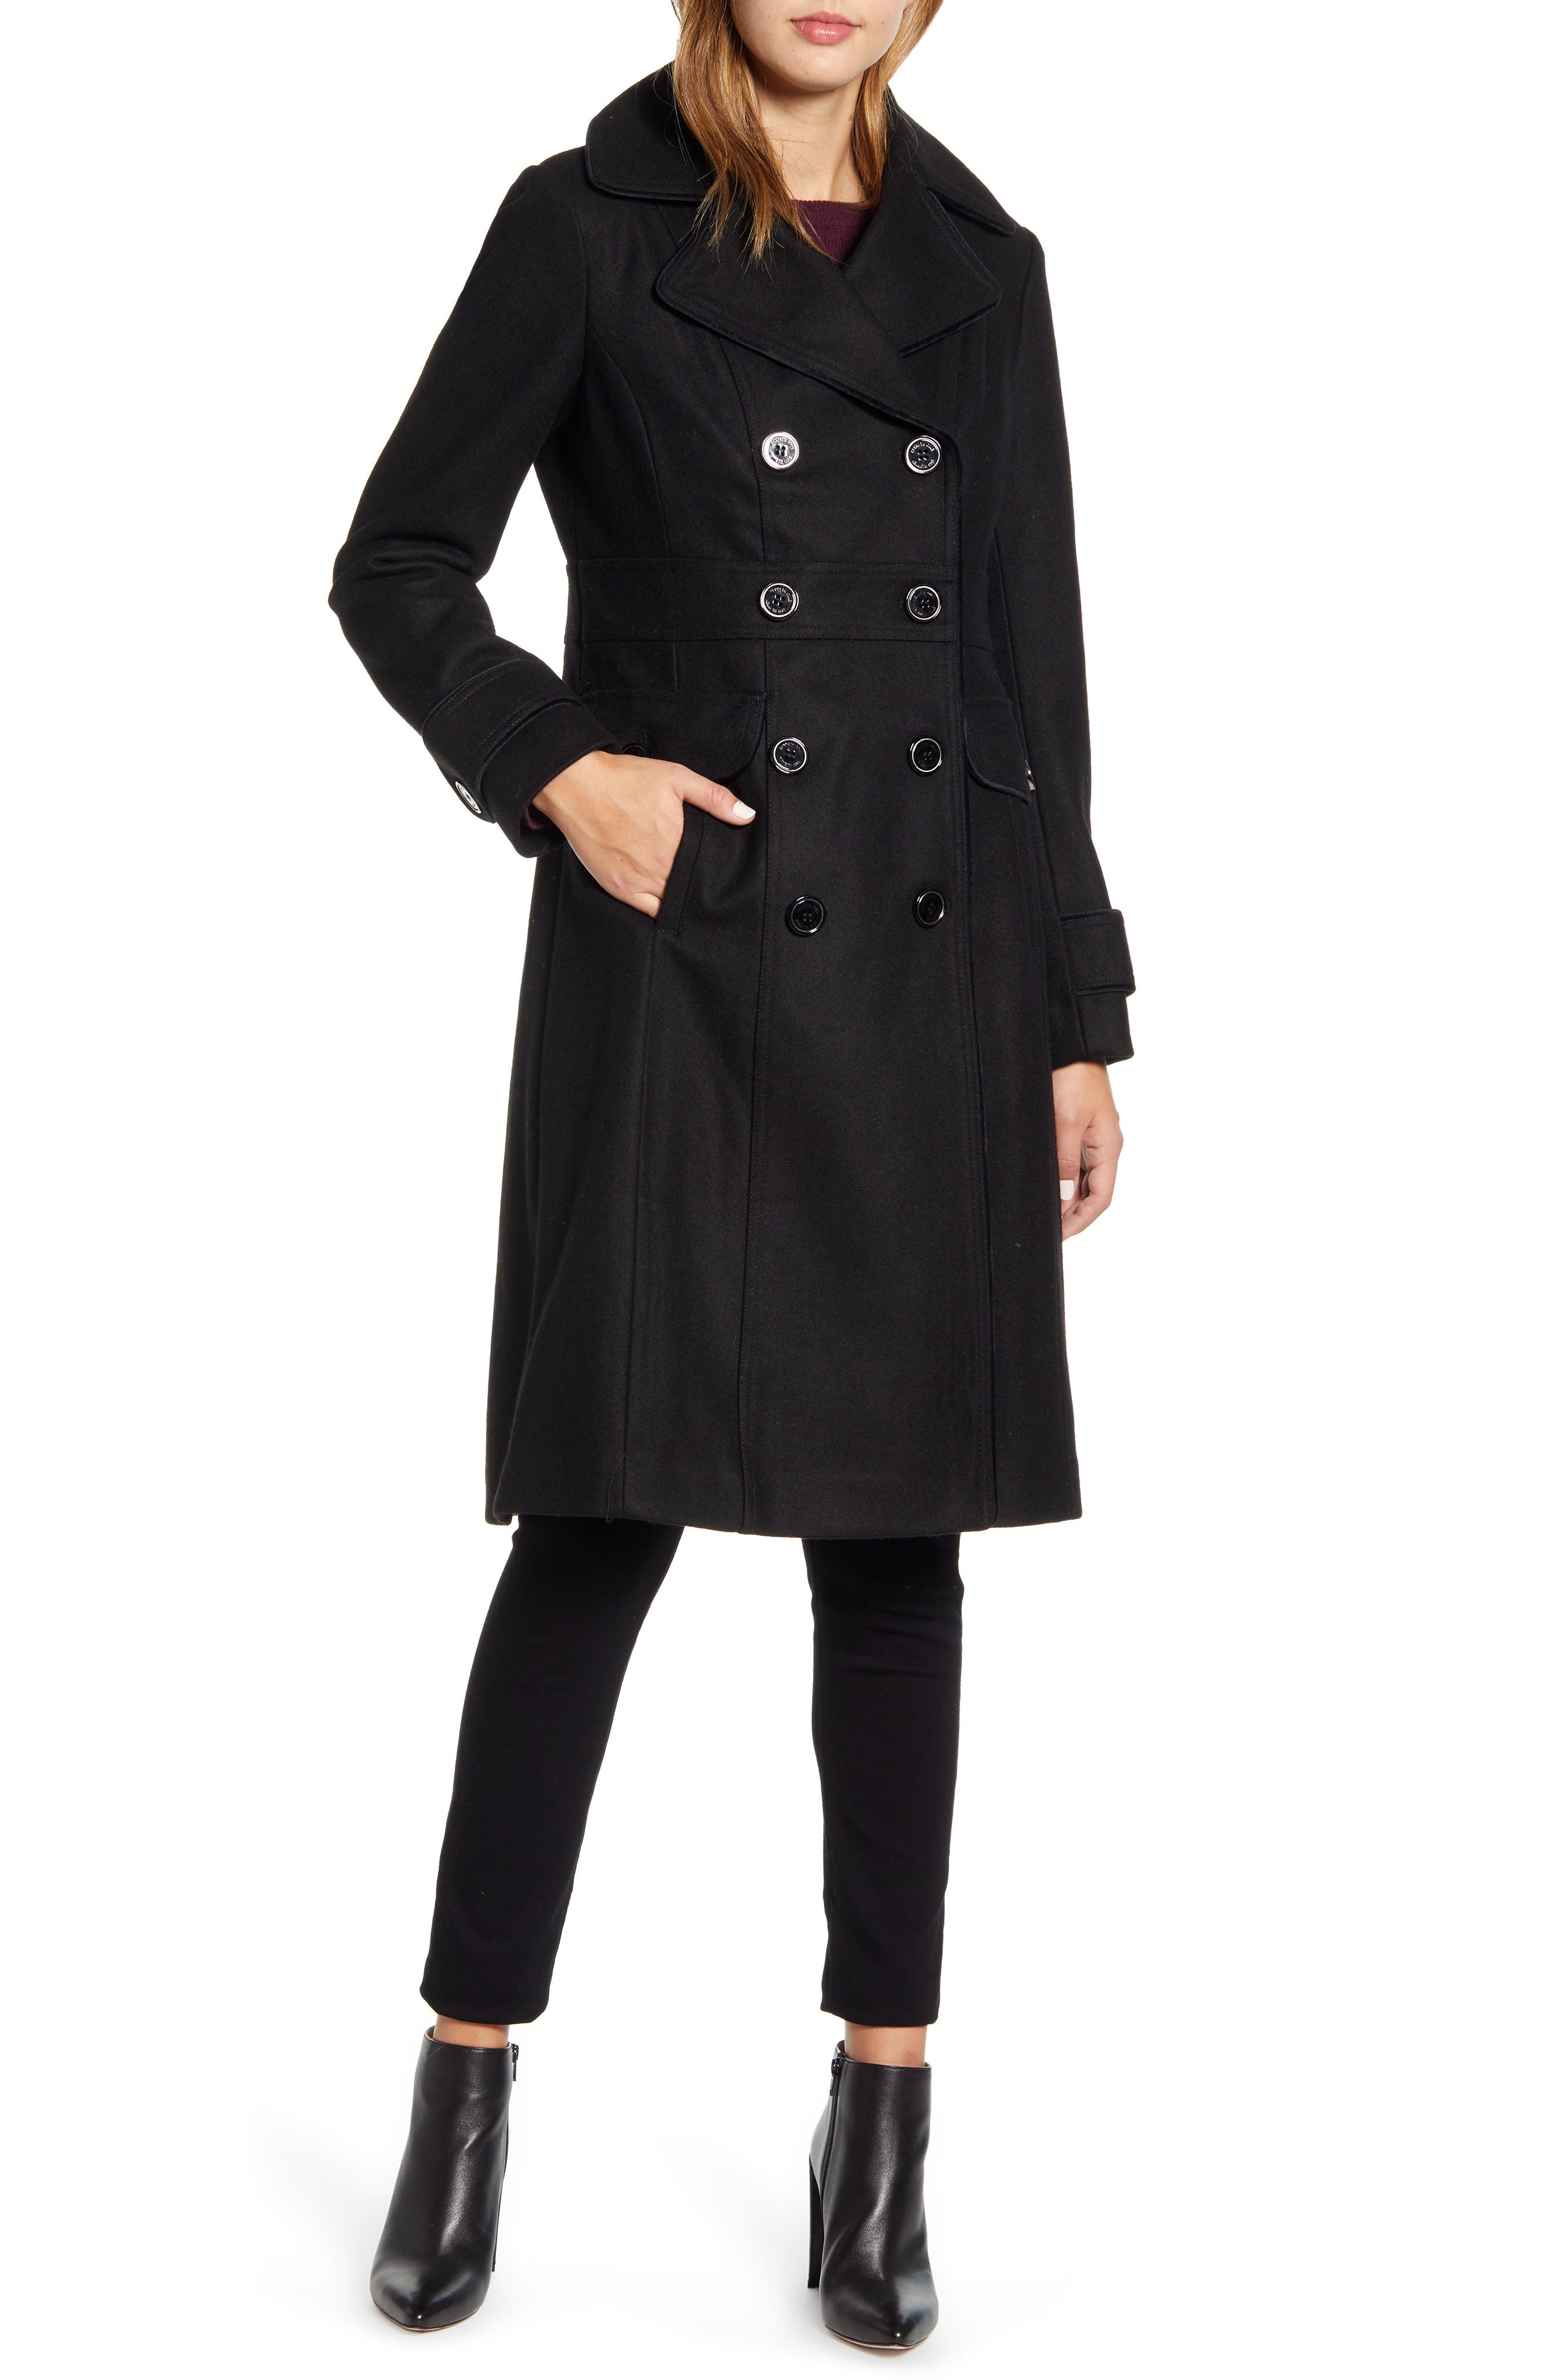 An outline of piping adds to the commanding military look of a double-breasted coat tailored for a sharp fit in warm wool-blend melton. Style Name: Kenneth Cole New York Wool Blend Military Coat. Style Number: 5931705. Available in stores.